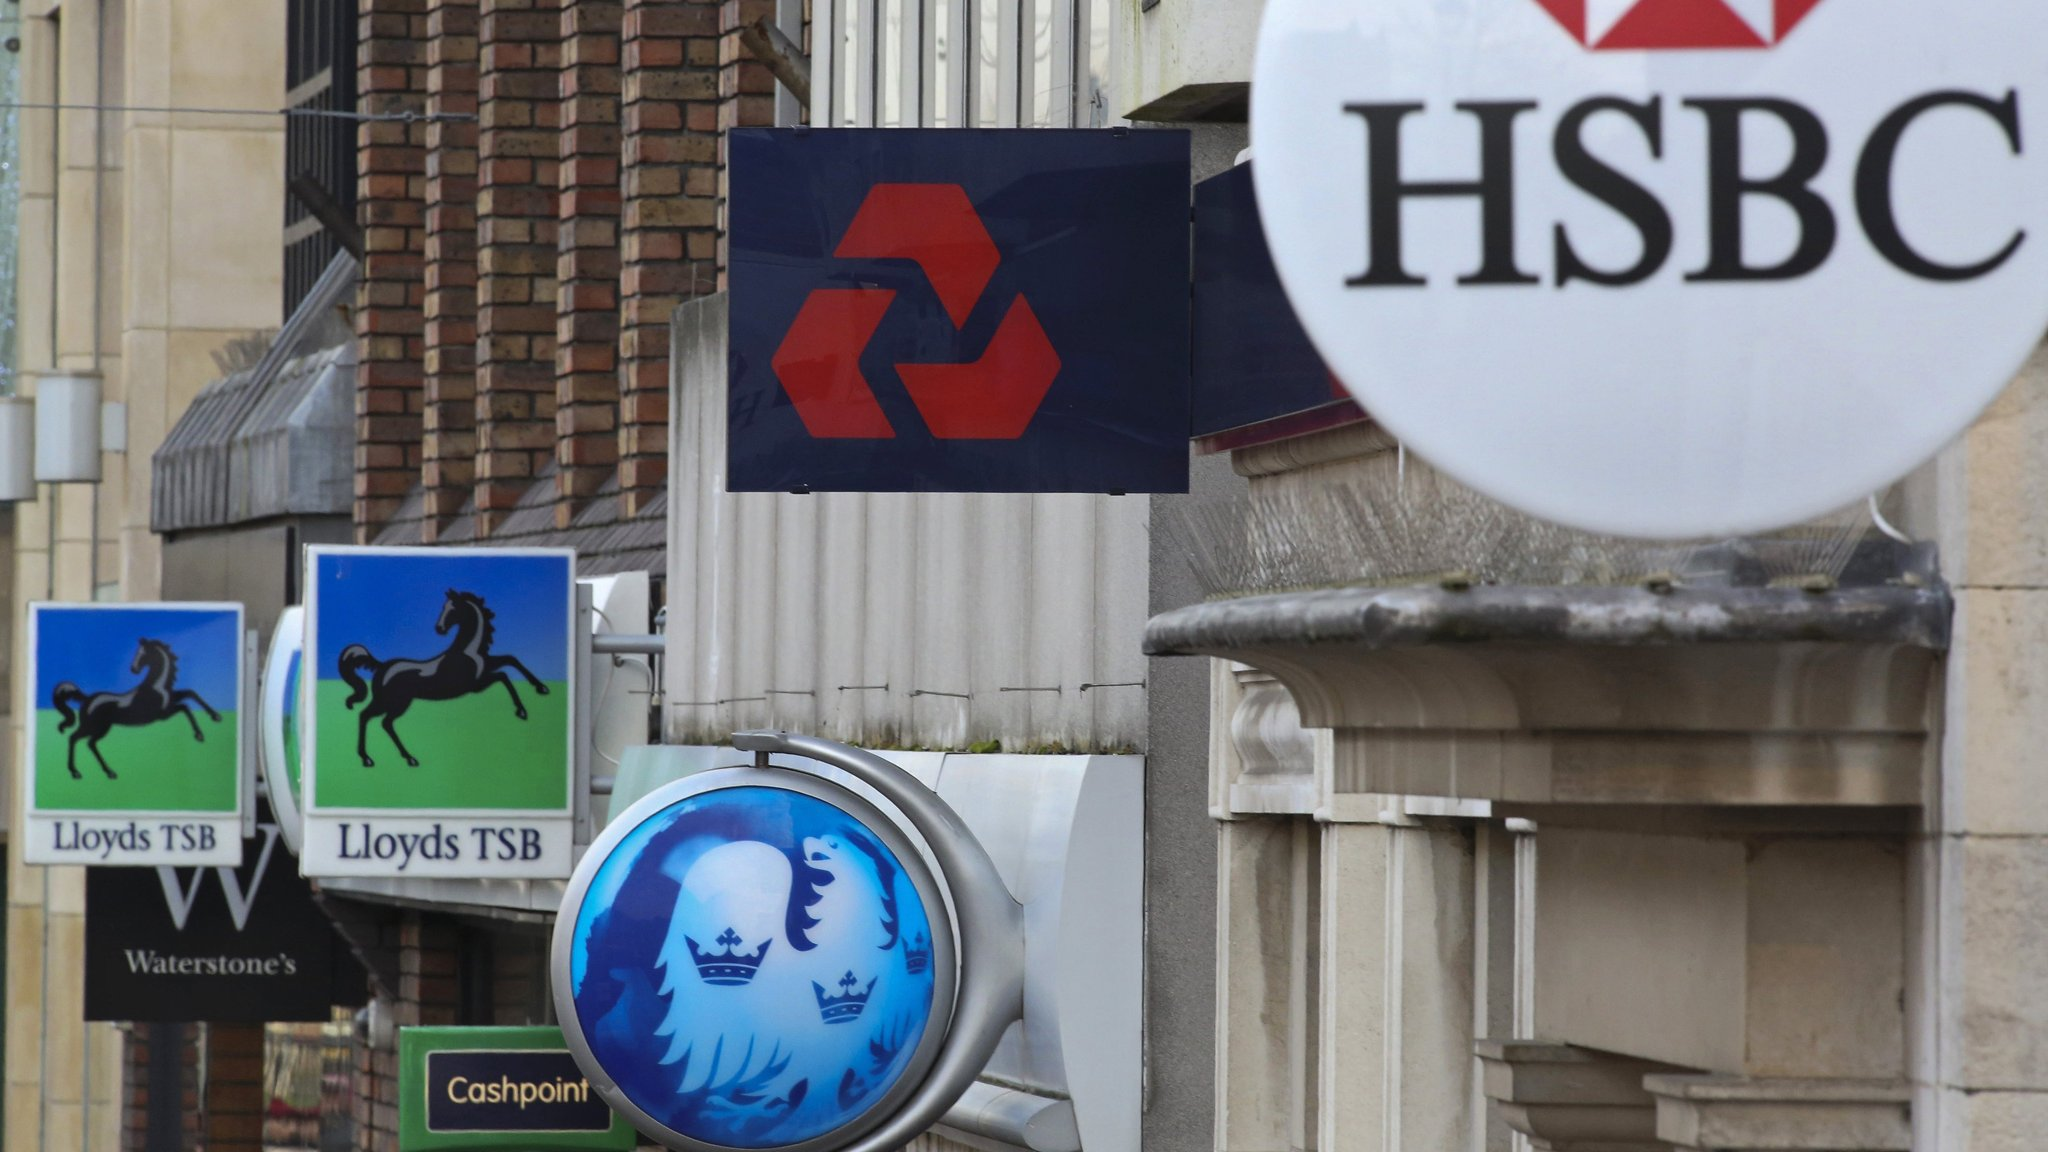 Britain's banks embrace new technology | Financial Times